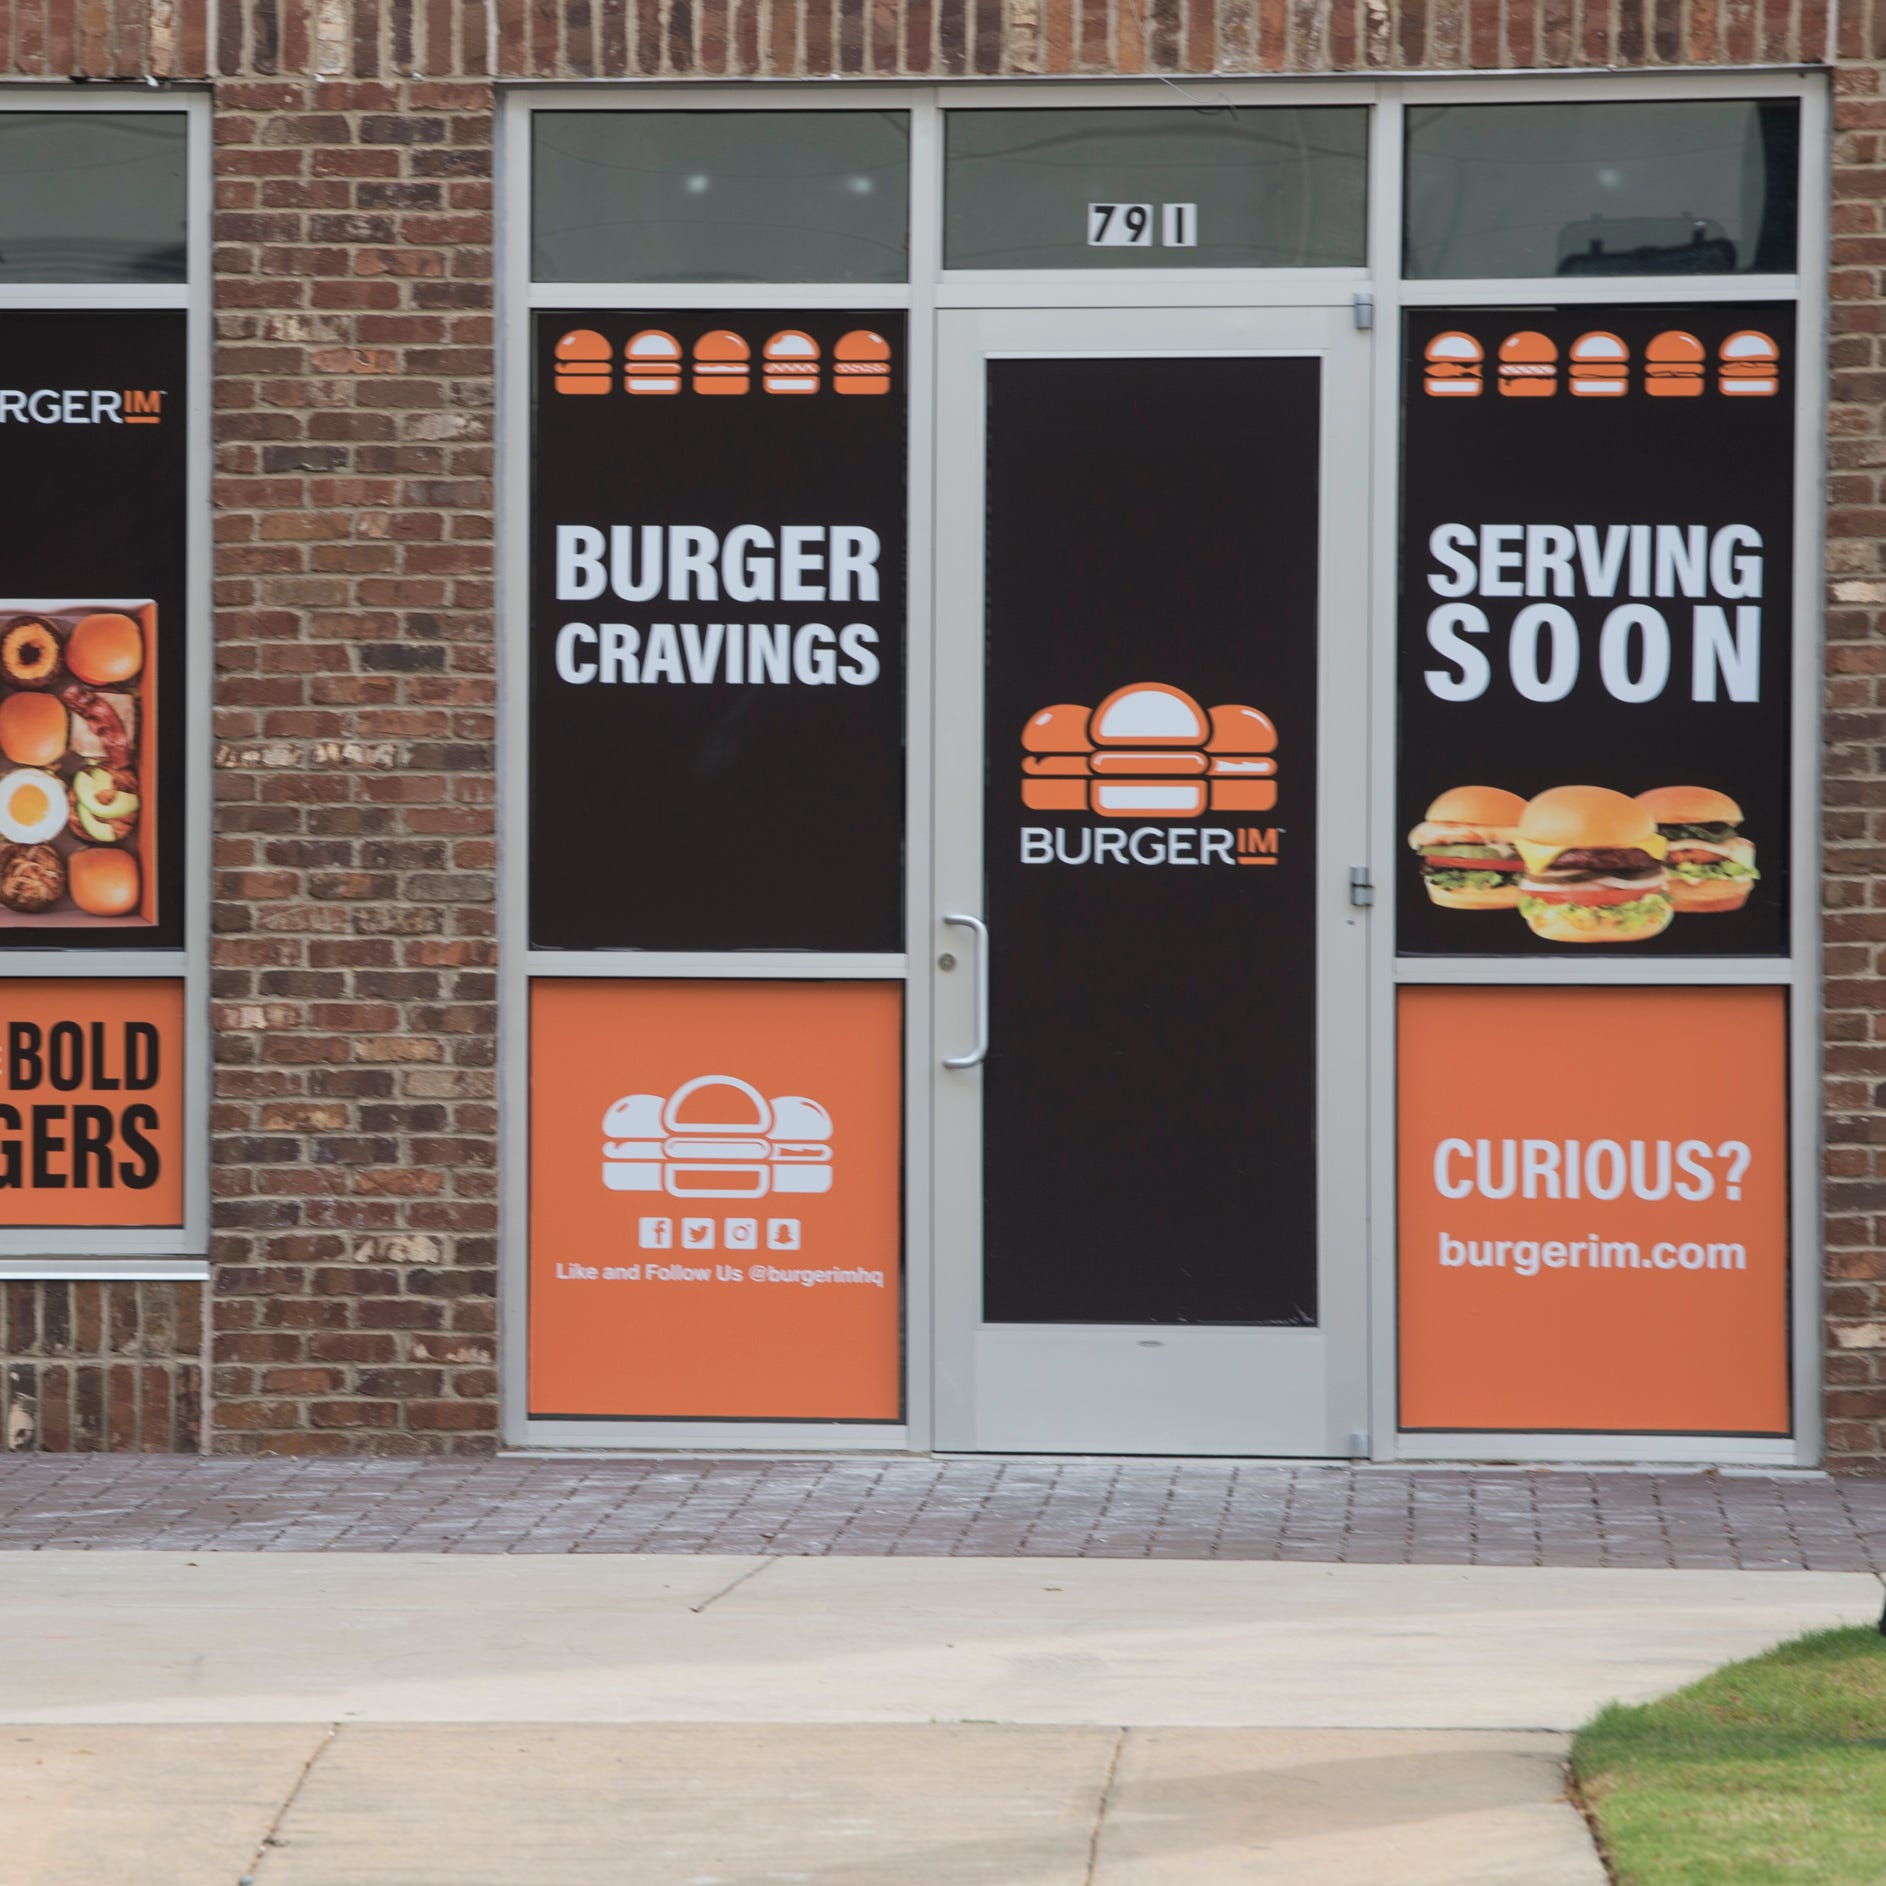 BurgerIM under construction at its new location at the intersection of Lee and Bibb Streets in downtown Montgomery, Ala., on Tuesday, Oct. 23, 2018.